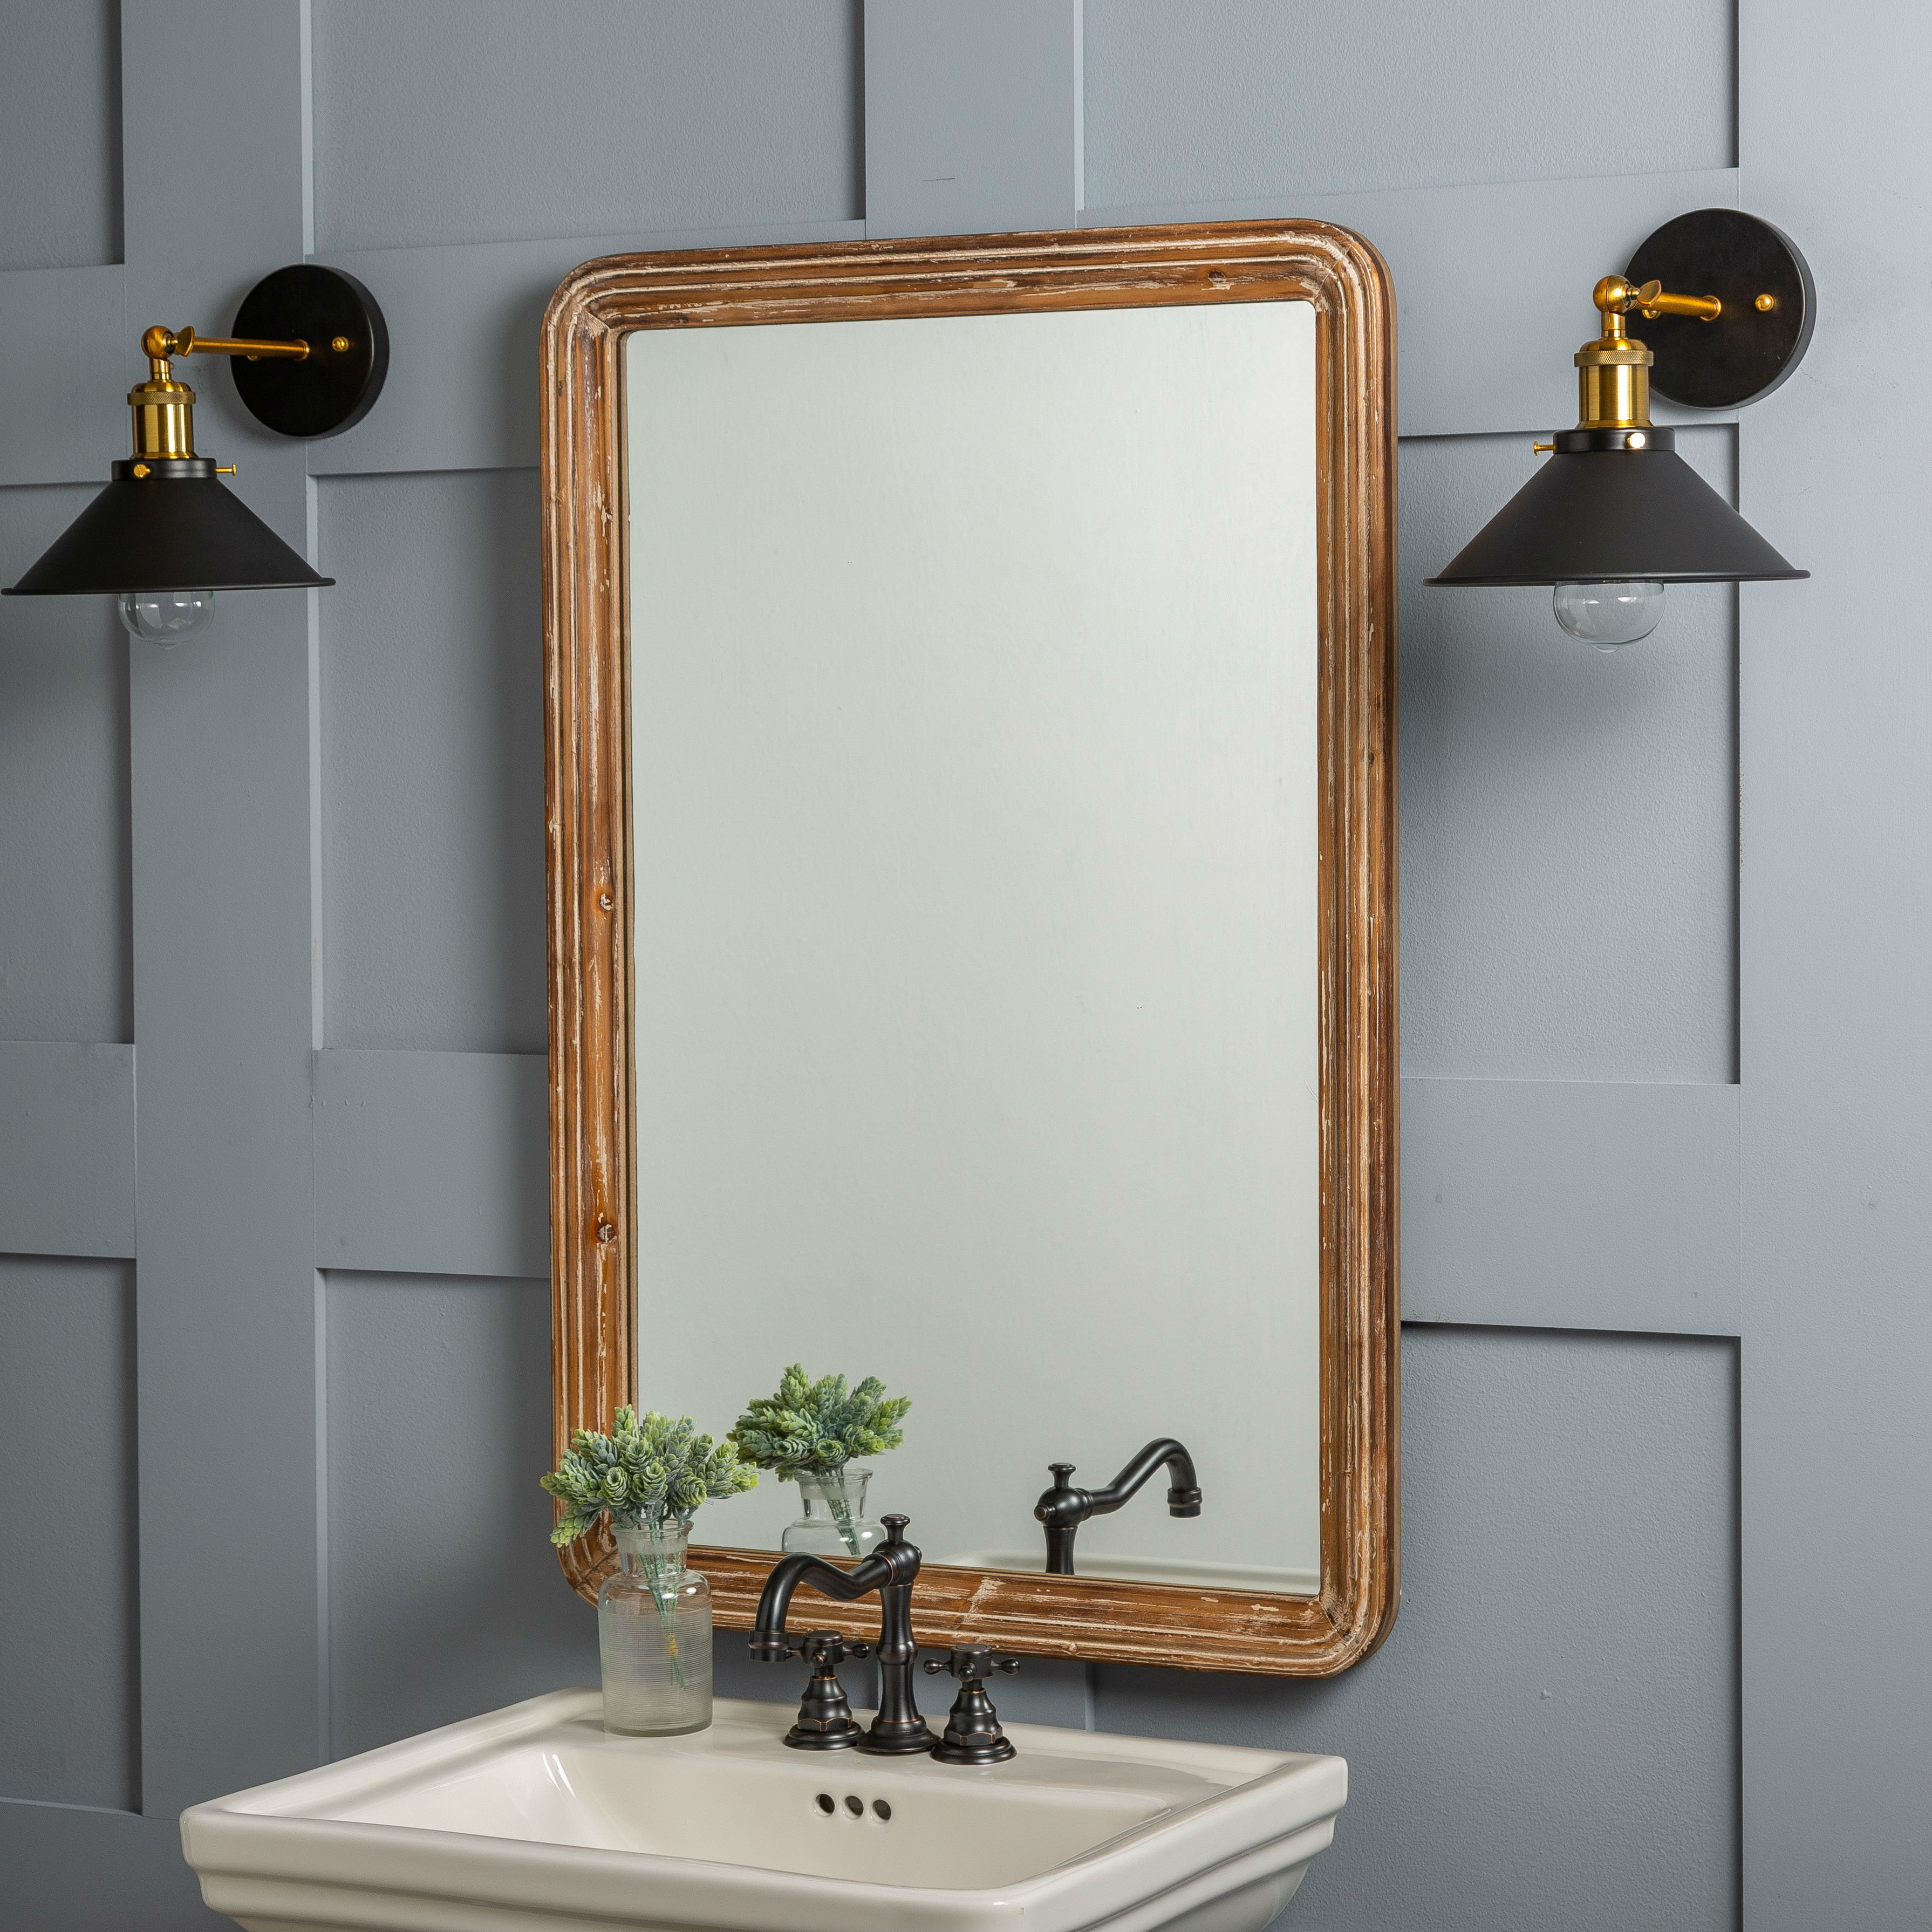 Farmhouse & Rustic Williston Forge Wall & Accent Mirrors in Koeller Industrial Metal Wall Mirrors (Image 8 of 30)